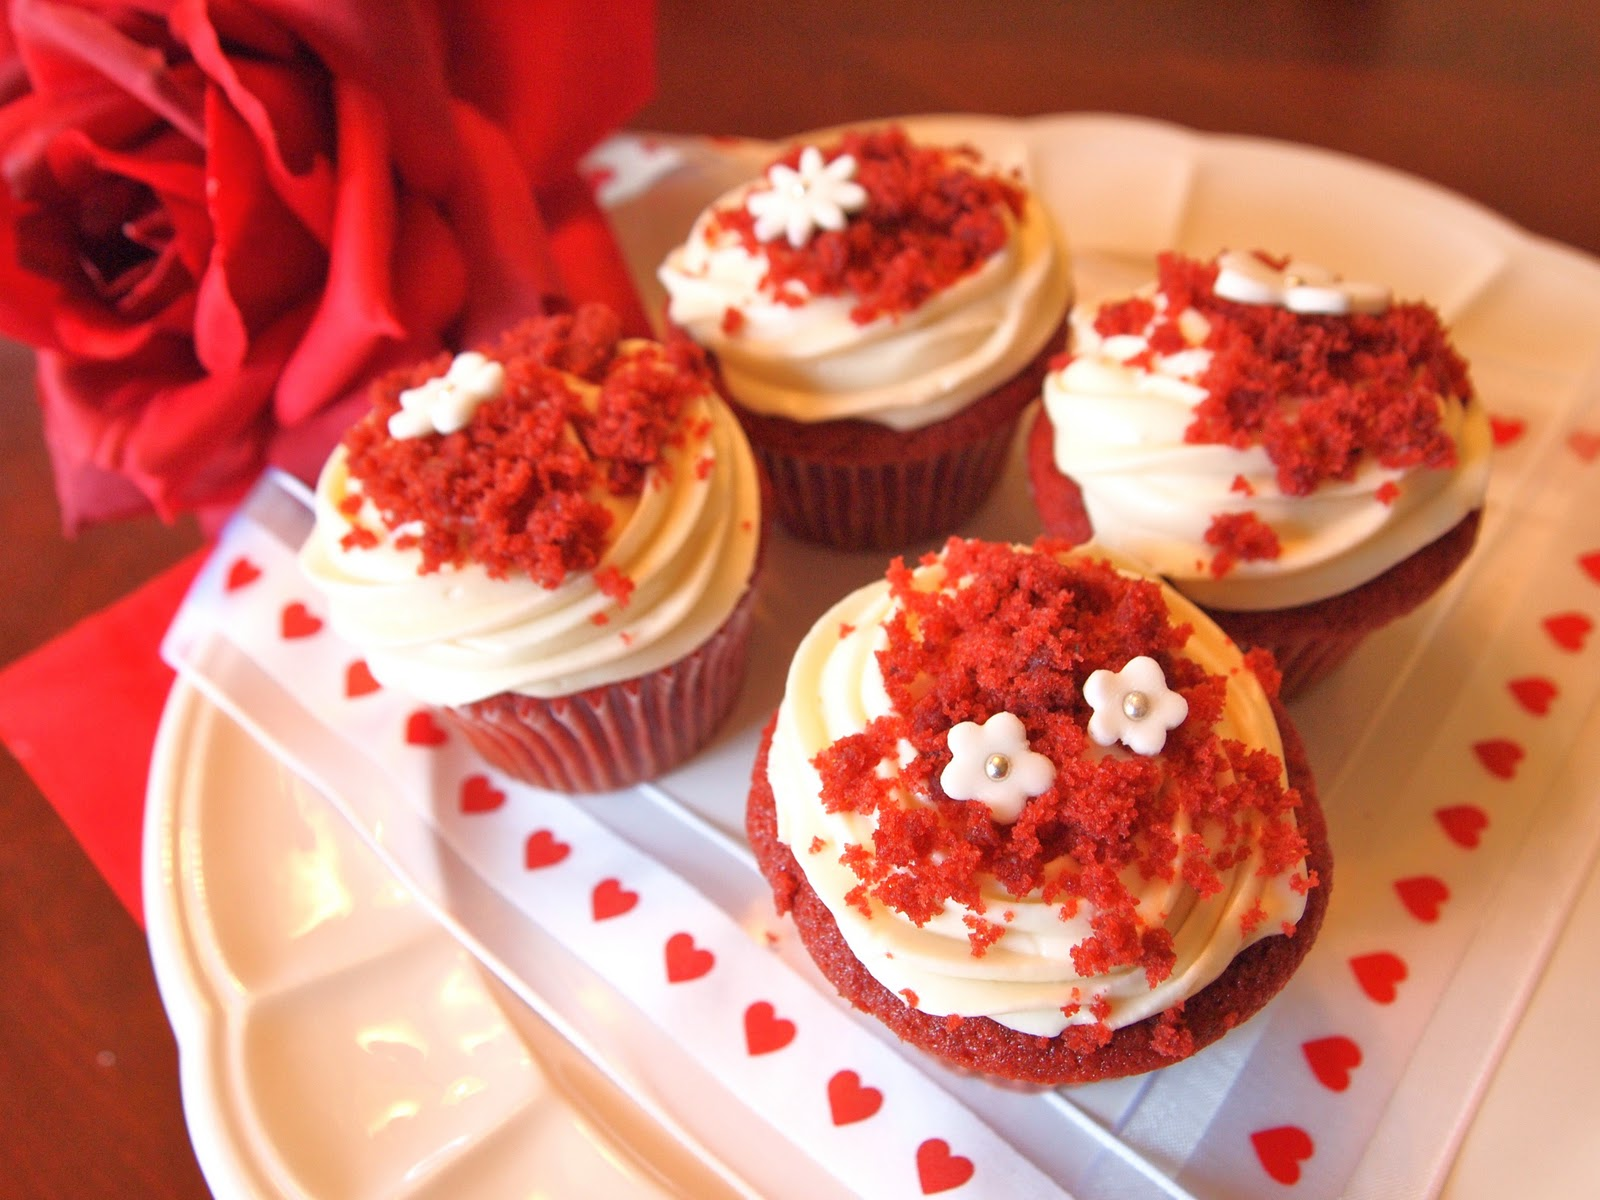 Super Moist Red Velvet Cupcake Recipe